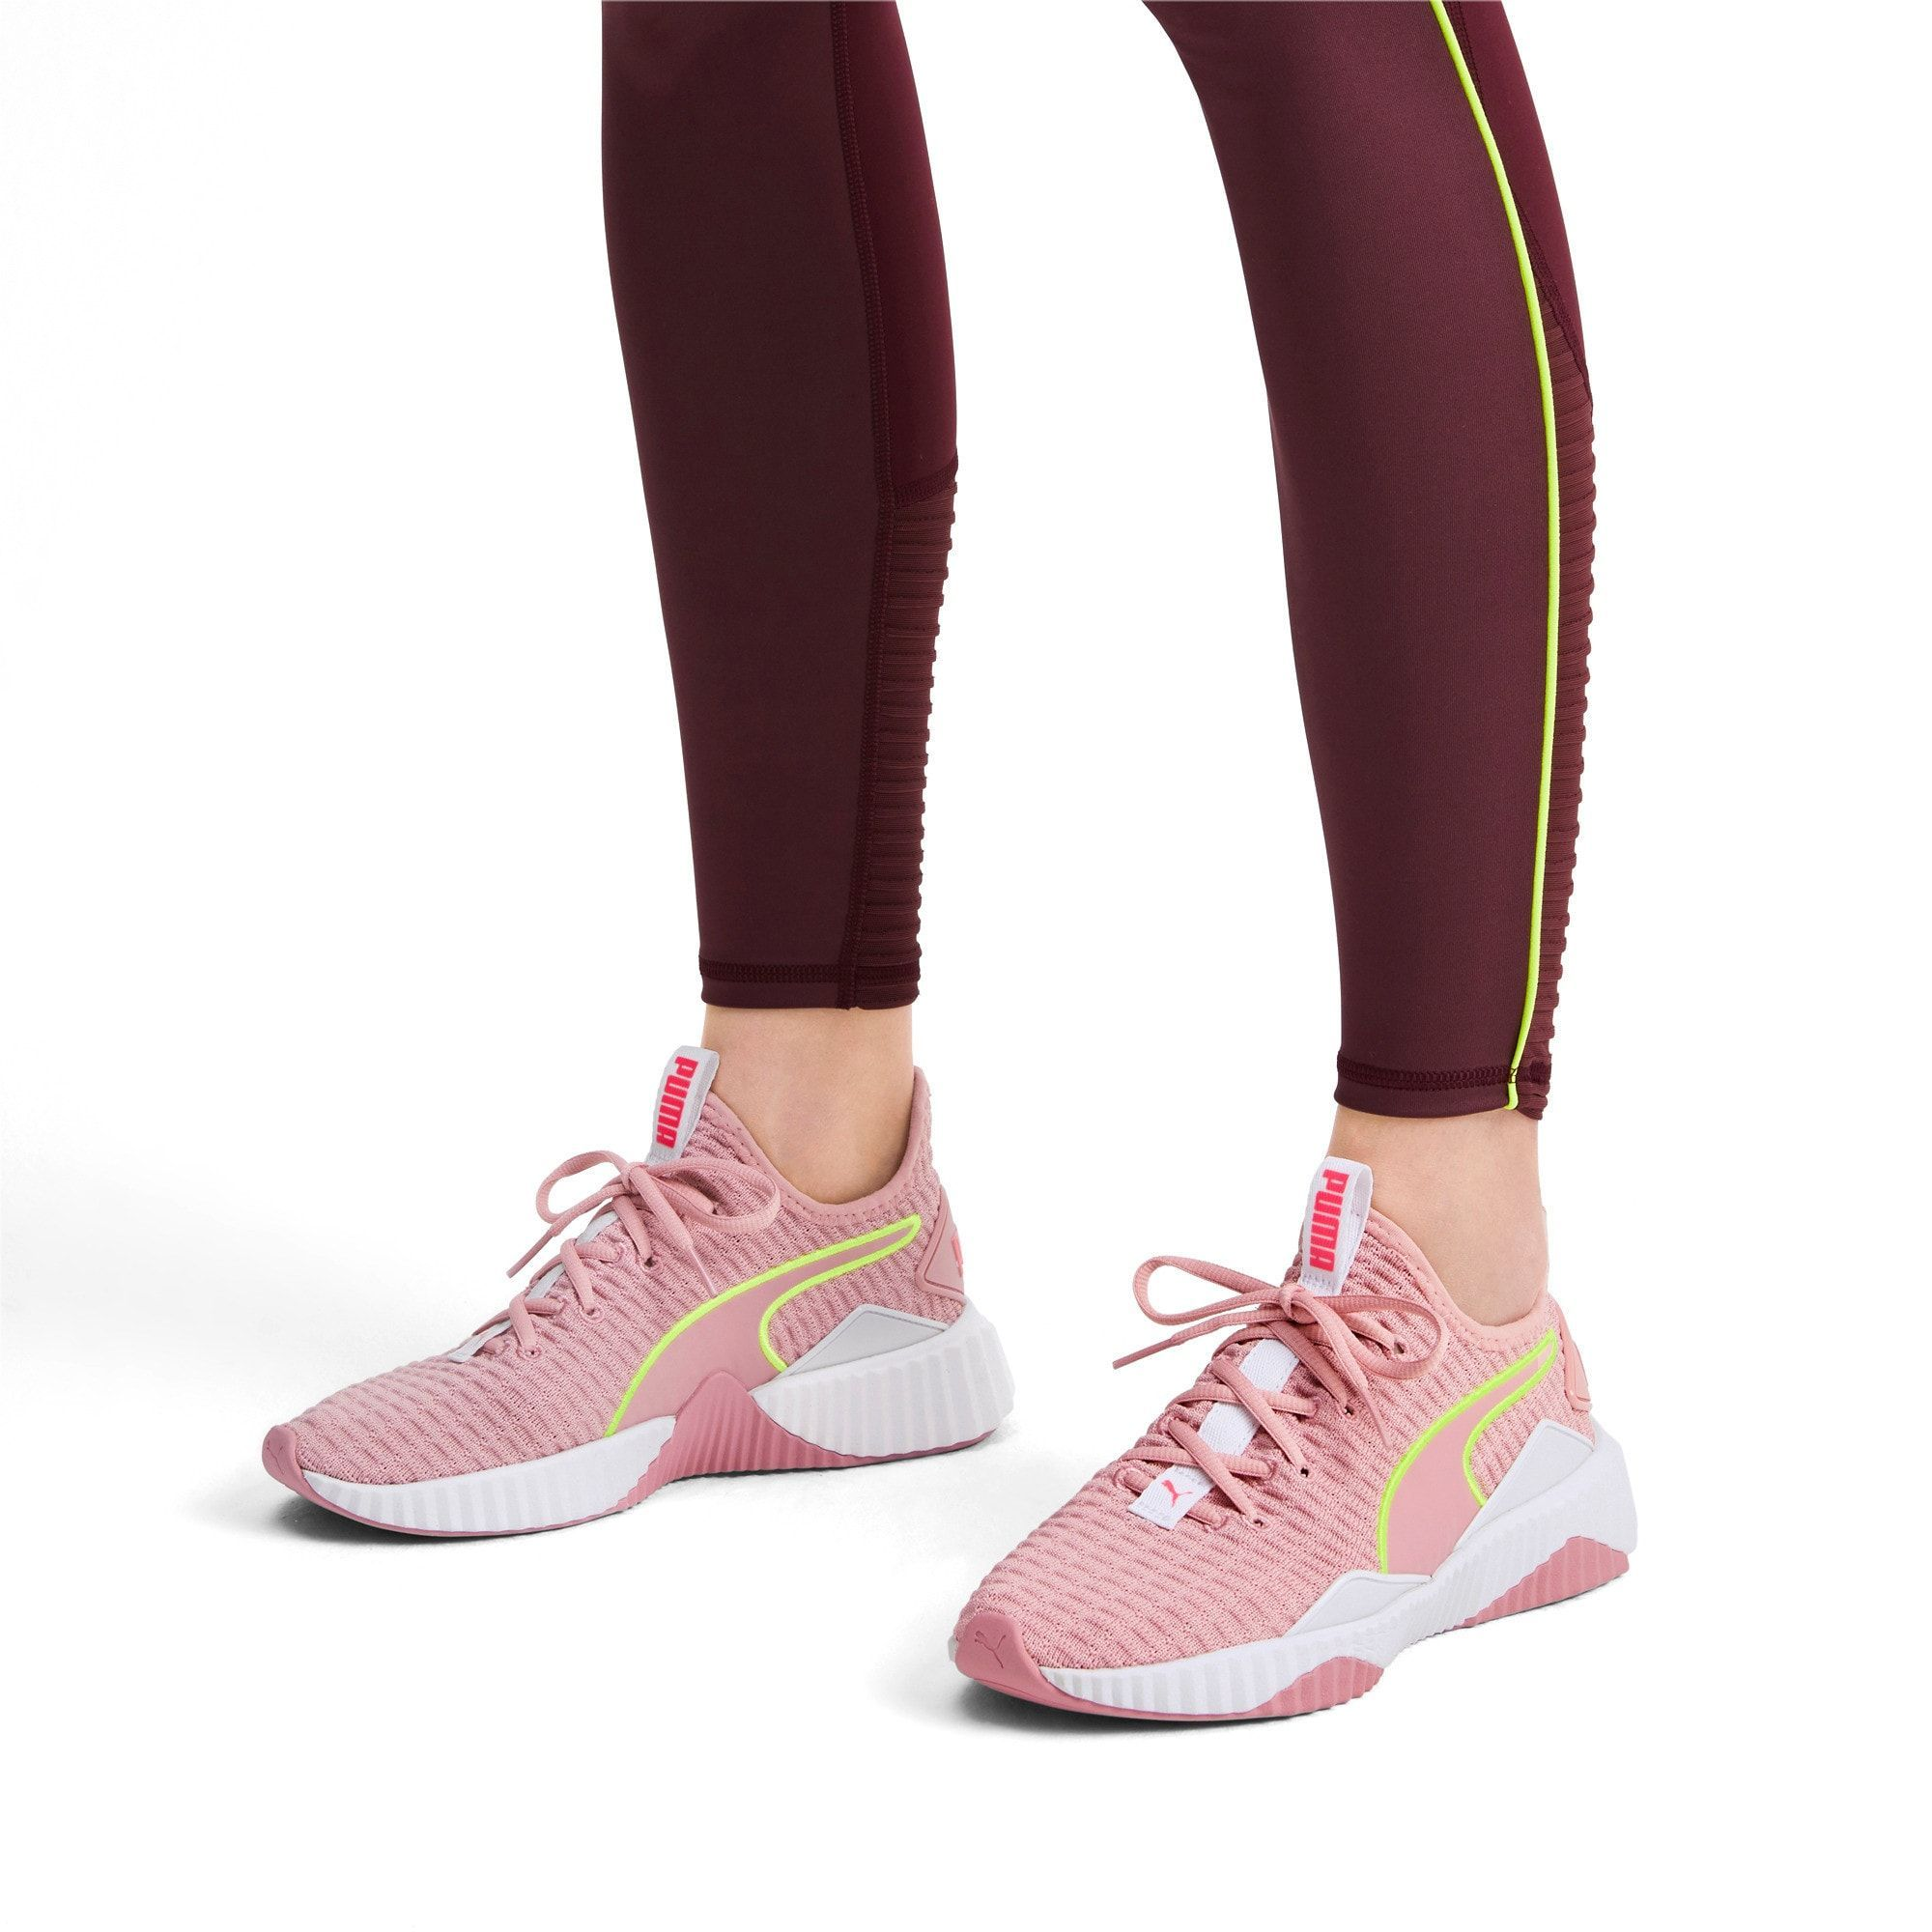 Trainers women, Womens basketball shoes